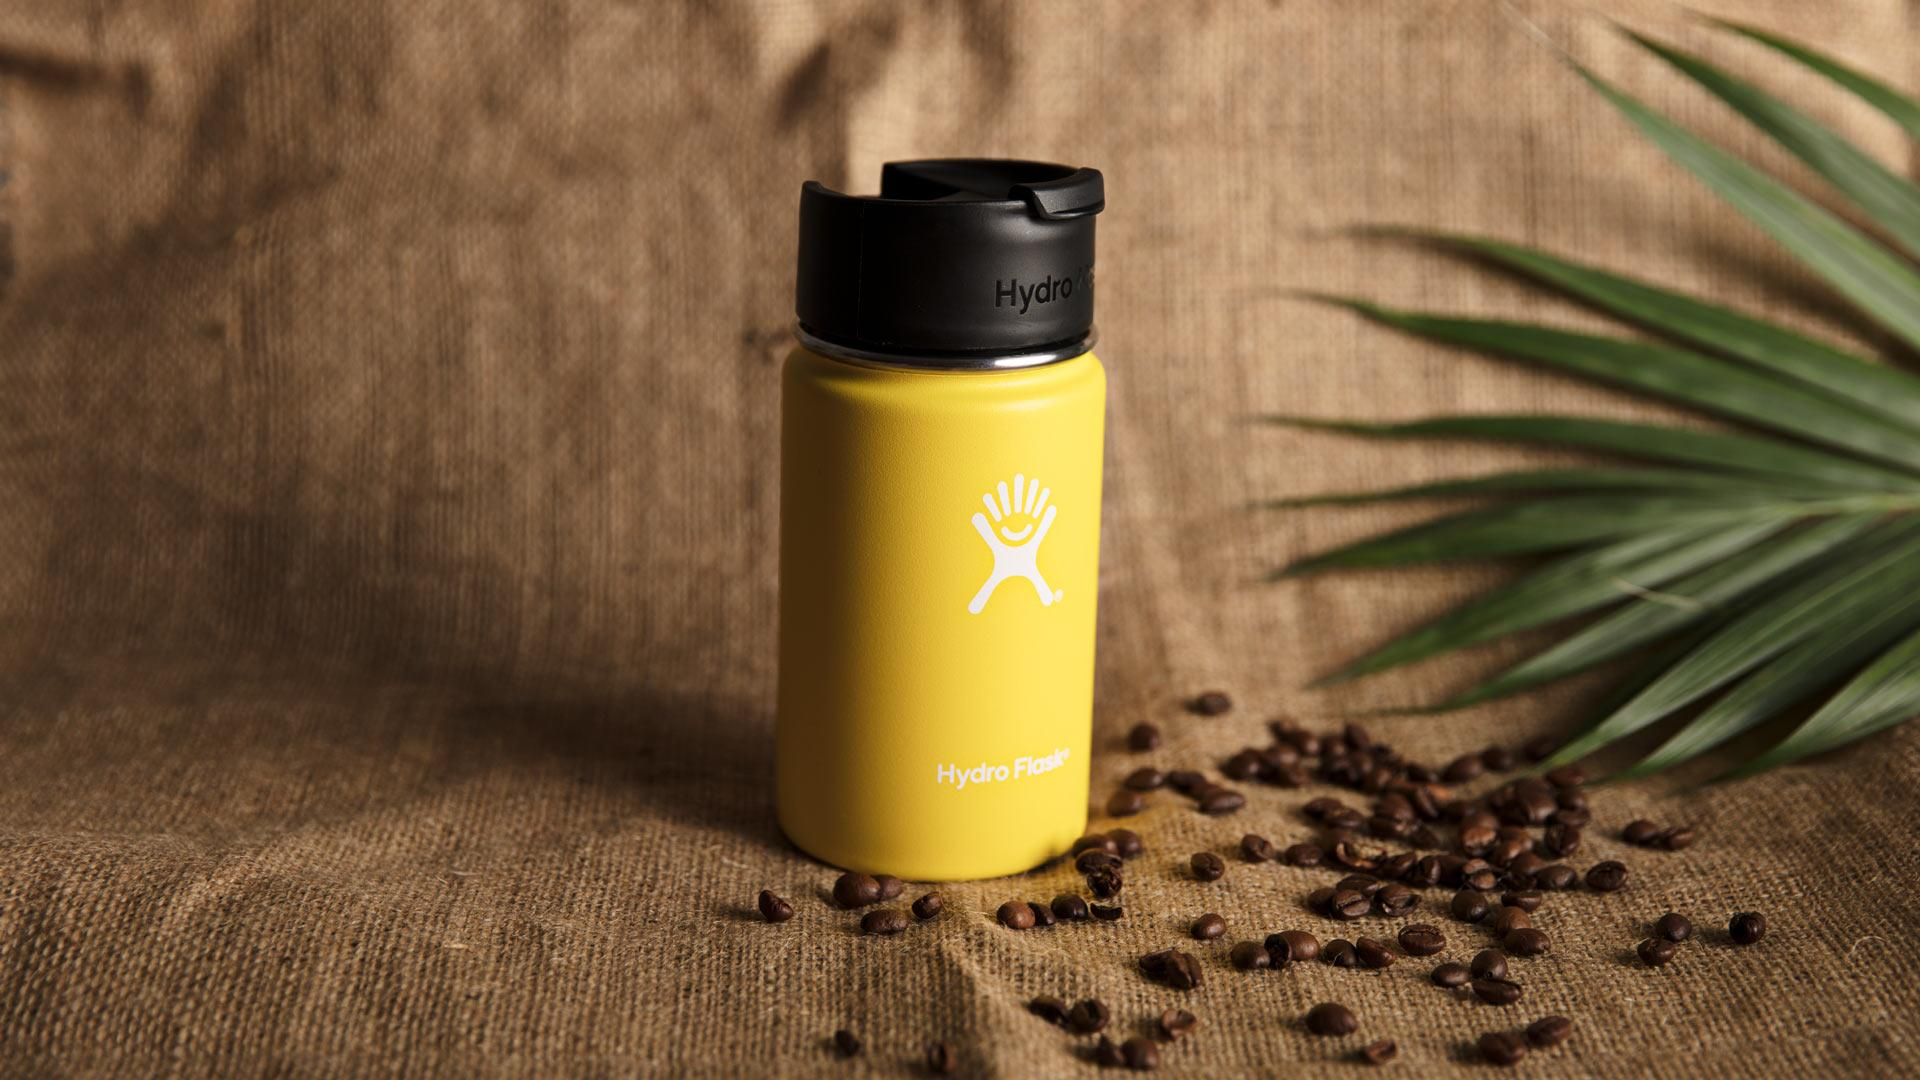 Hydro Flask's coffee flask in lemon yellow